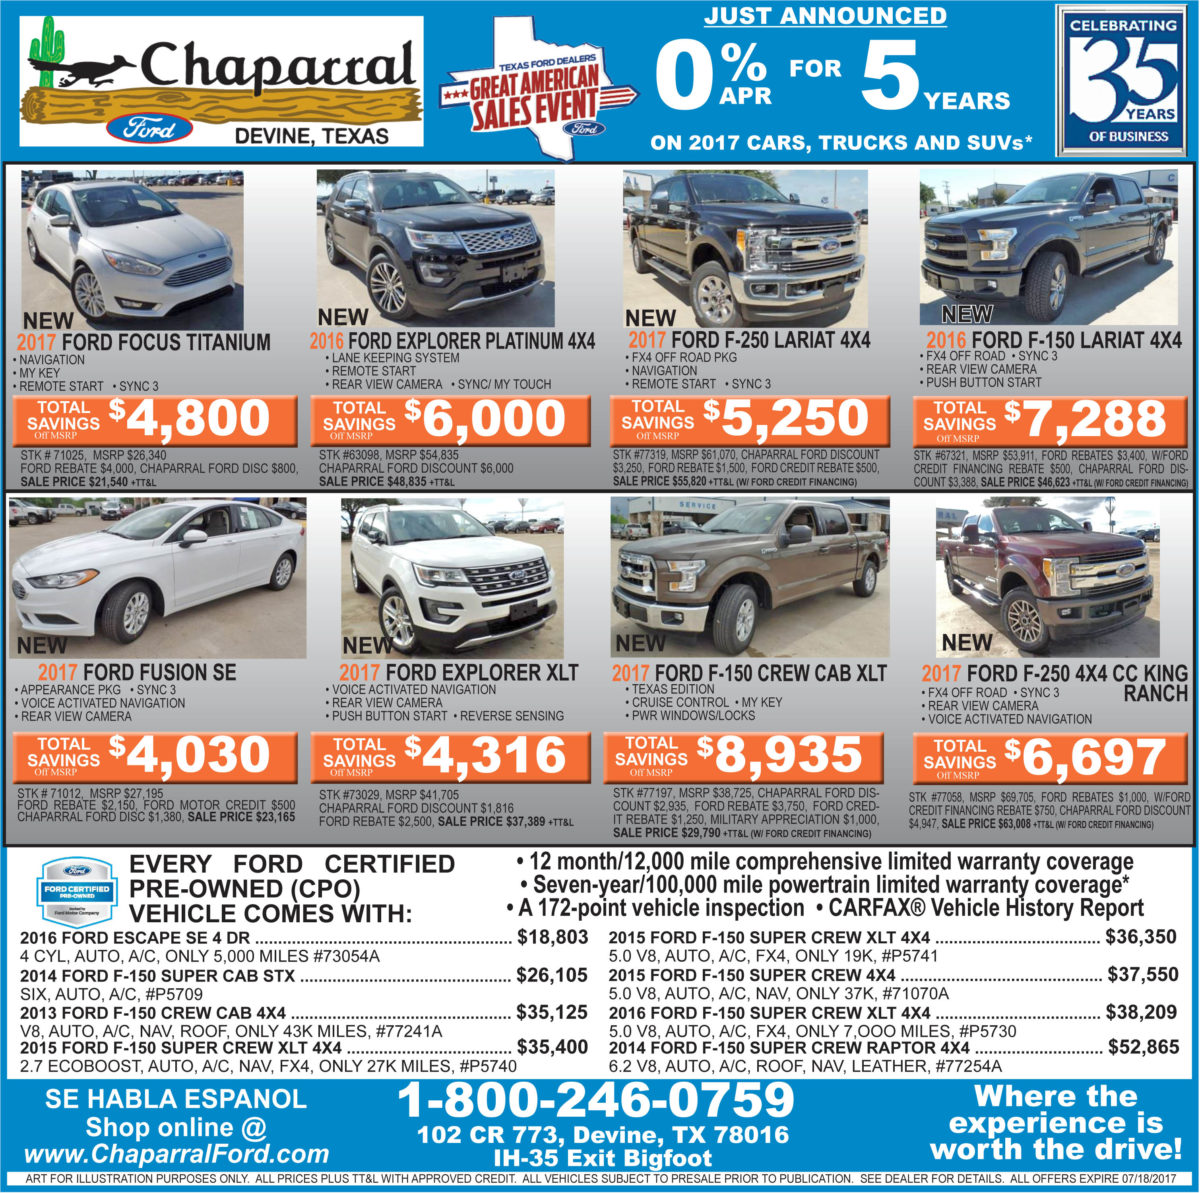 Chaparral Ford deals for the week of 7-12-17